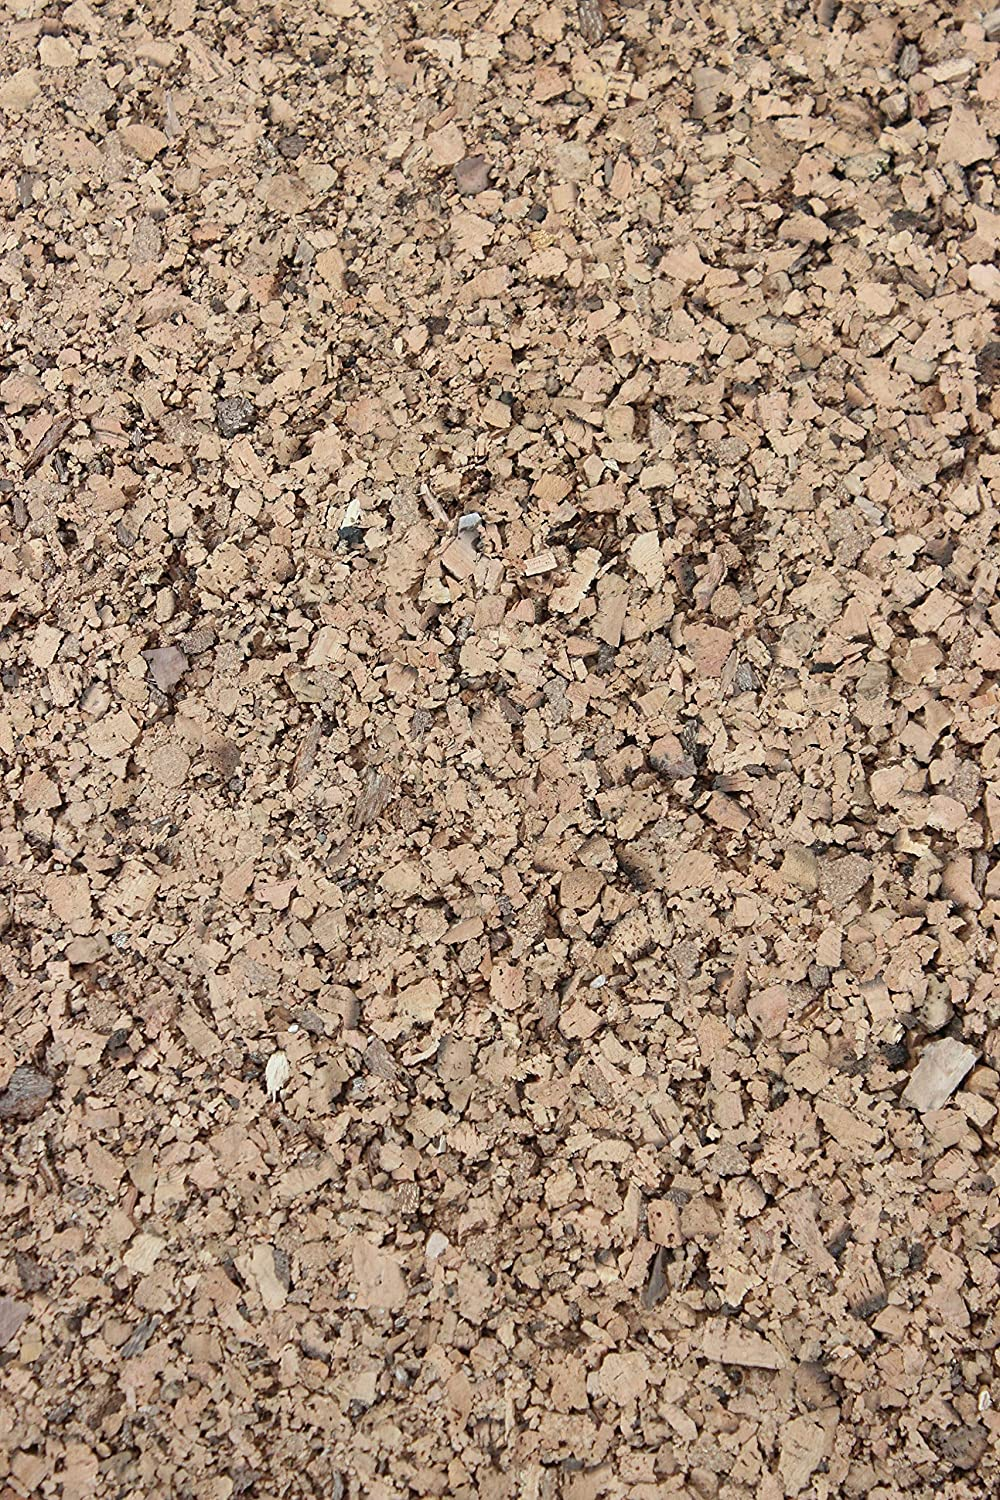 20 mm Thick Cork Board 2 cm Thick 100 x 50 cm Large Cork Granulate 20 mm Thick Dimensions 1m x 0.5m, Insulating Material Inside and Outside VersaCork